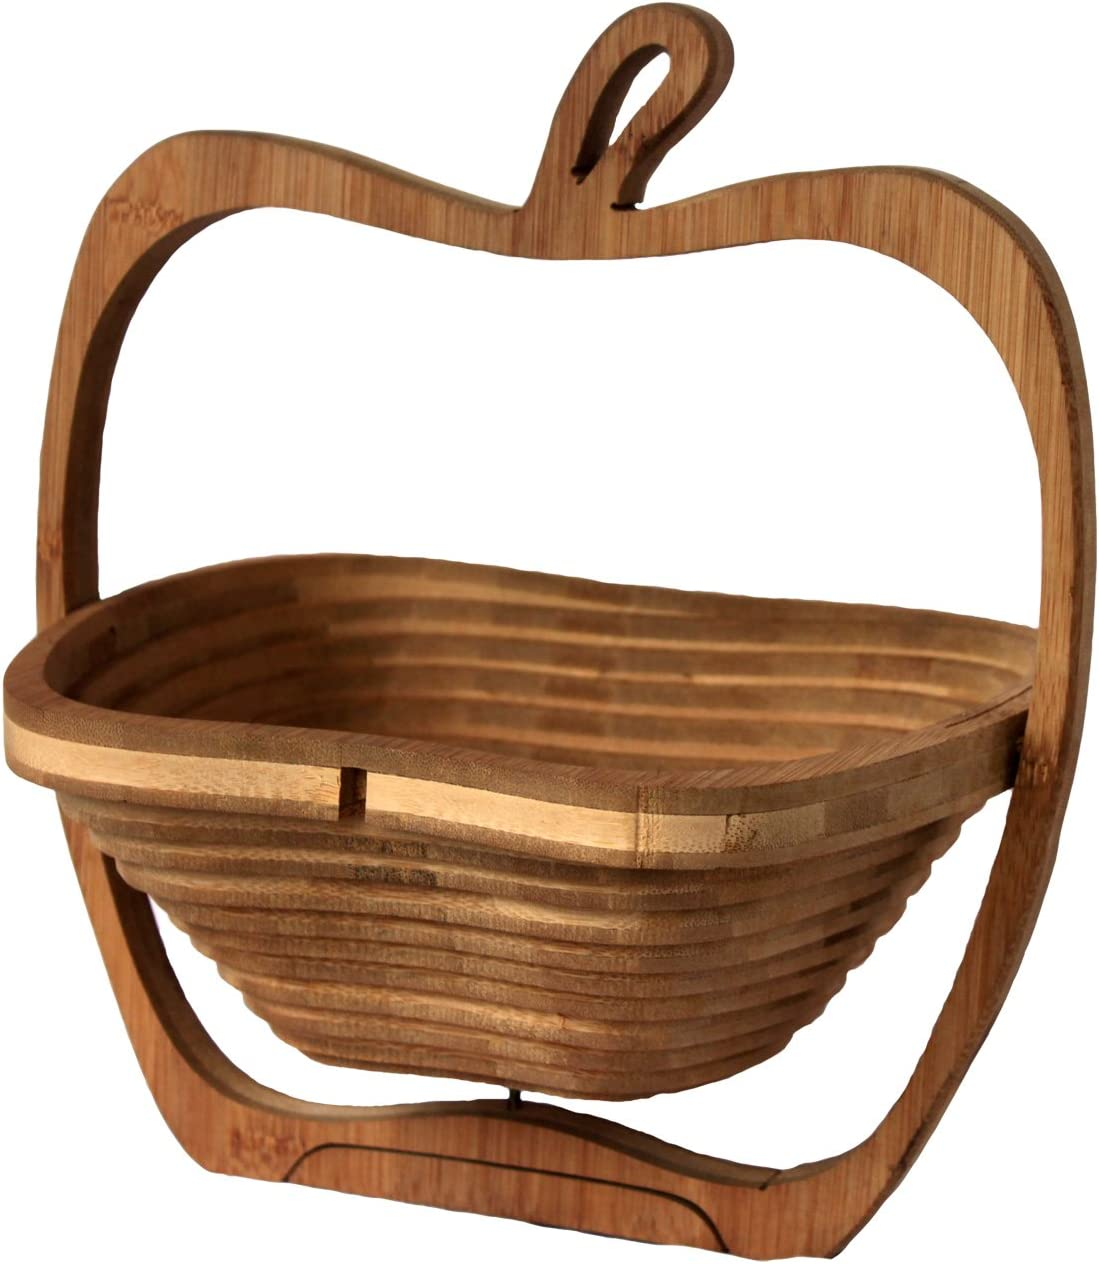 RaanPahMuang Fair Trade Bamboo Wood Collapsible Apple Fruit Serving Basket